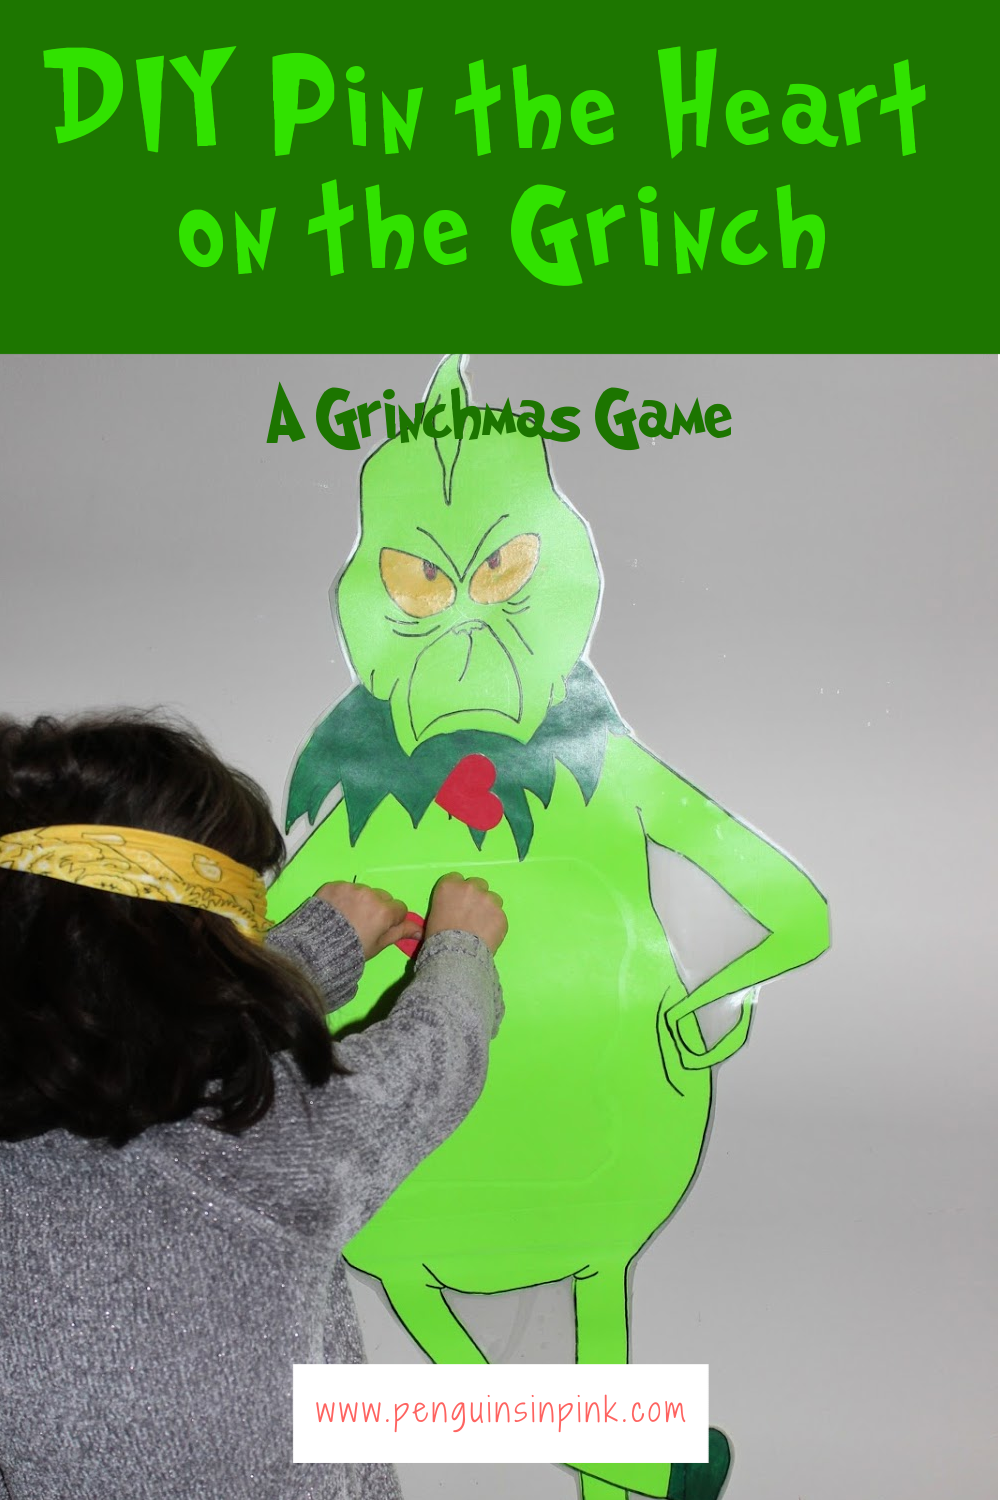 If like me, you tried to buy a Pin the Heart on the Grinch Game only for it to be sold out then this tutorial is for you. How to make a DIY Pin the Heart on the Grinch. Similar to pin the tail on the donkey, players are blind folded, and have to pin a heart on the Grinch.